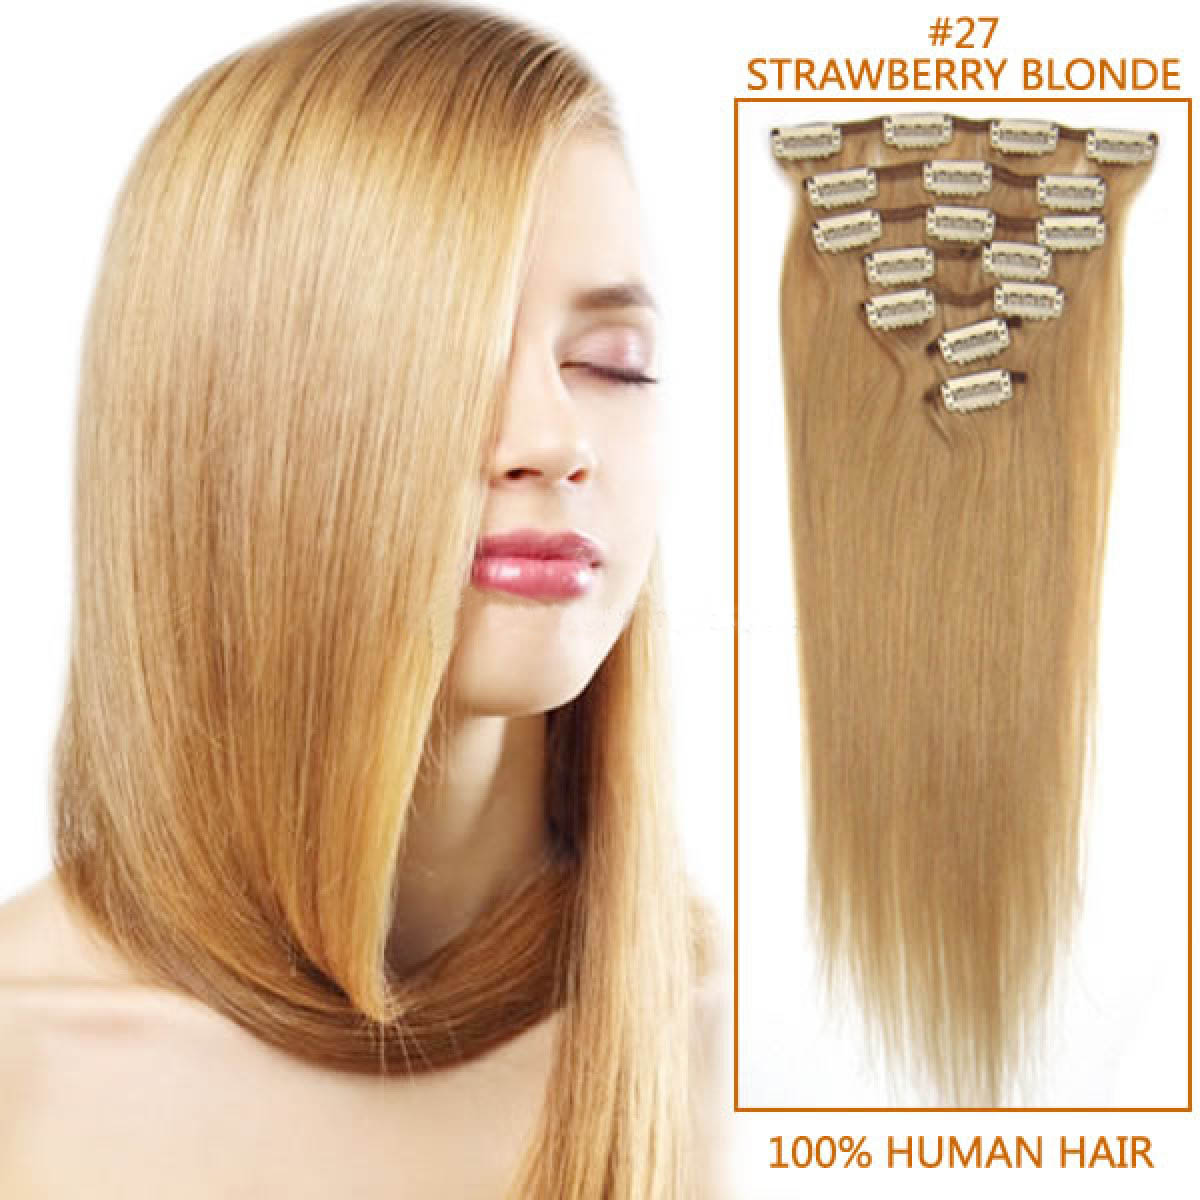 30 Inch 27 Strawberry Blonde Clip In Human Hair Extensions 8pcs